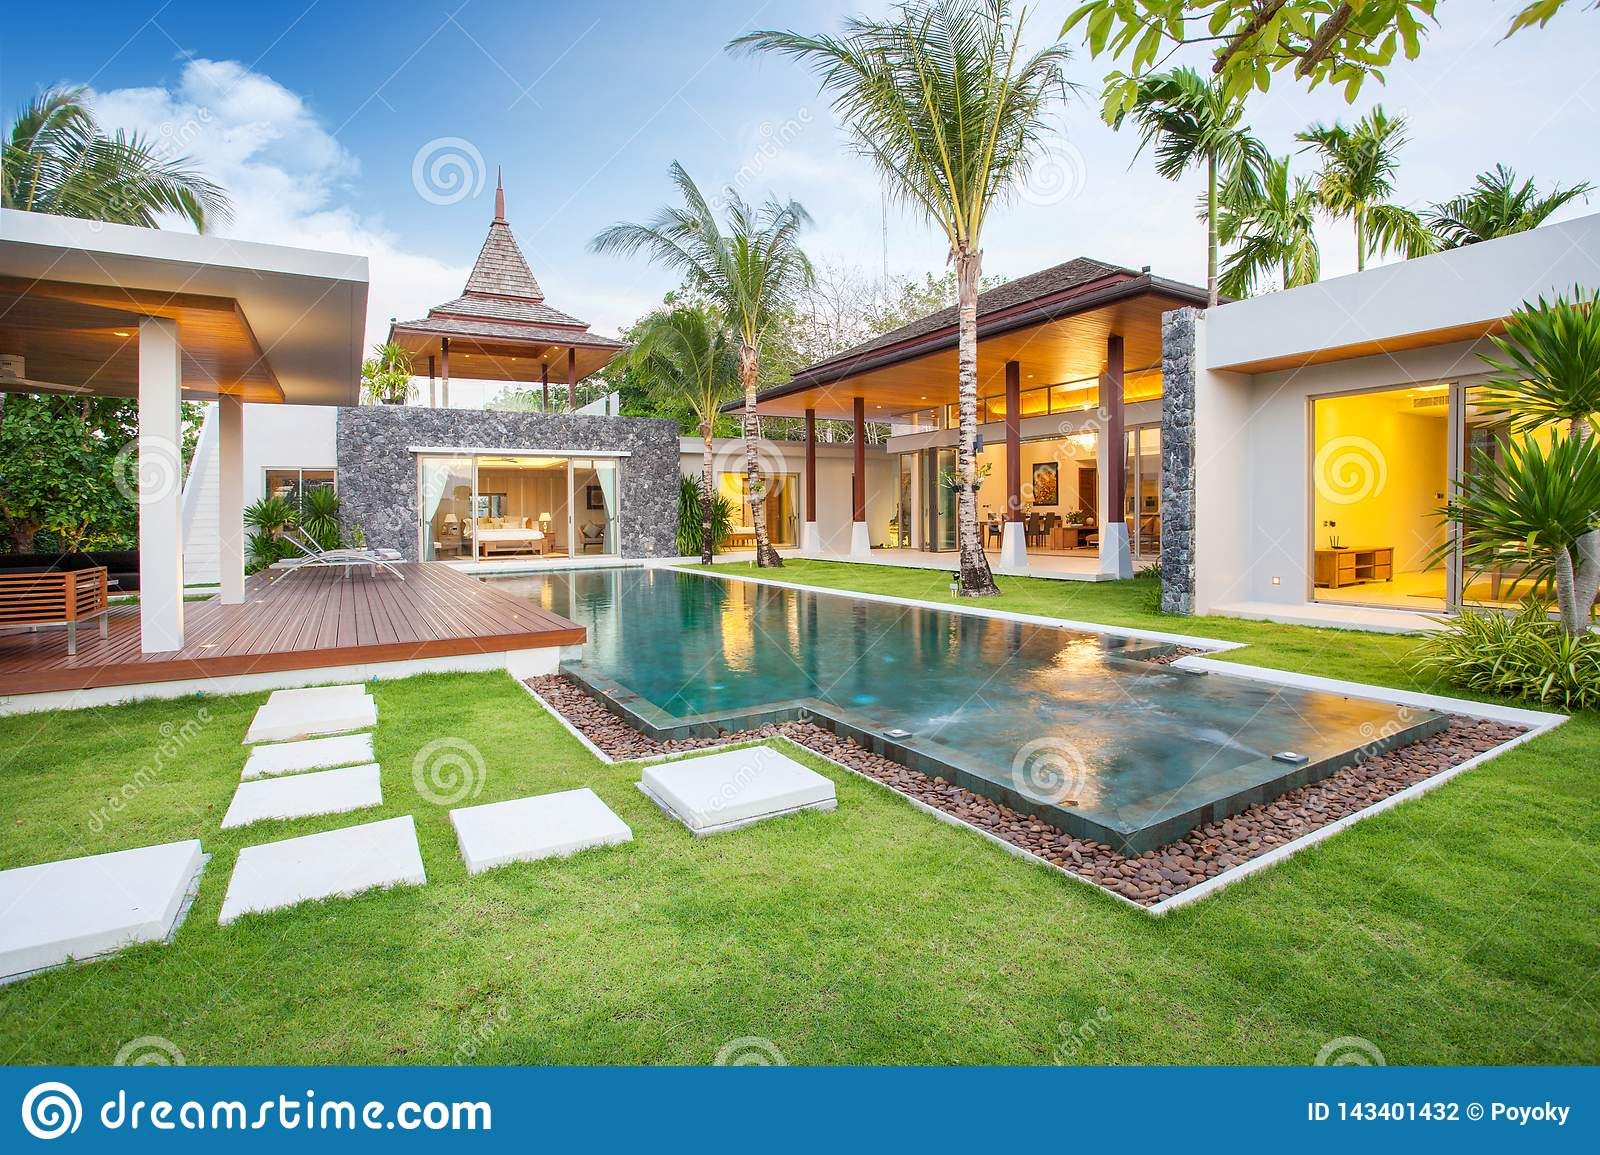 Interior And Exterior Design Of Pool Villa With Swimming Pool Of The House Or Home Building Stock Photo Image Of Leisure Interior 143401432